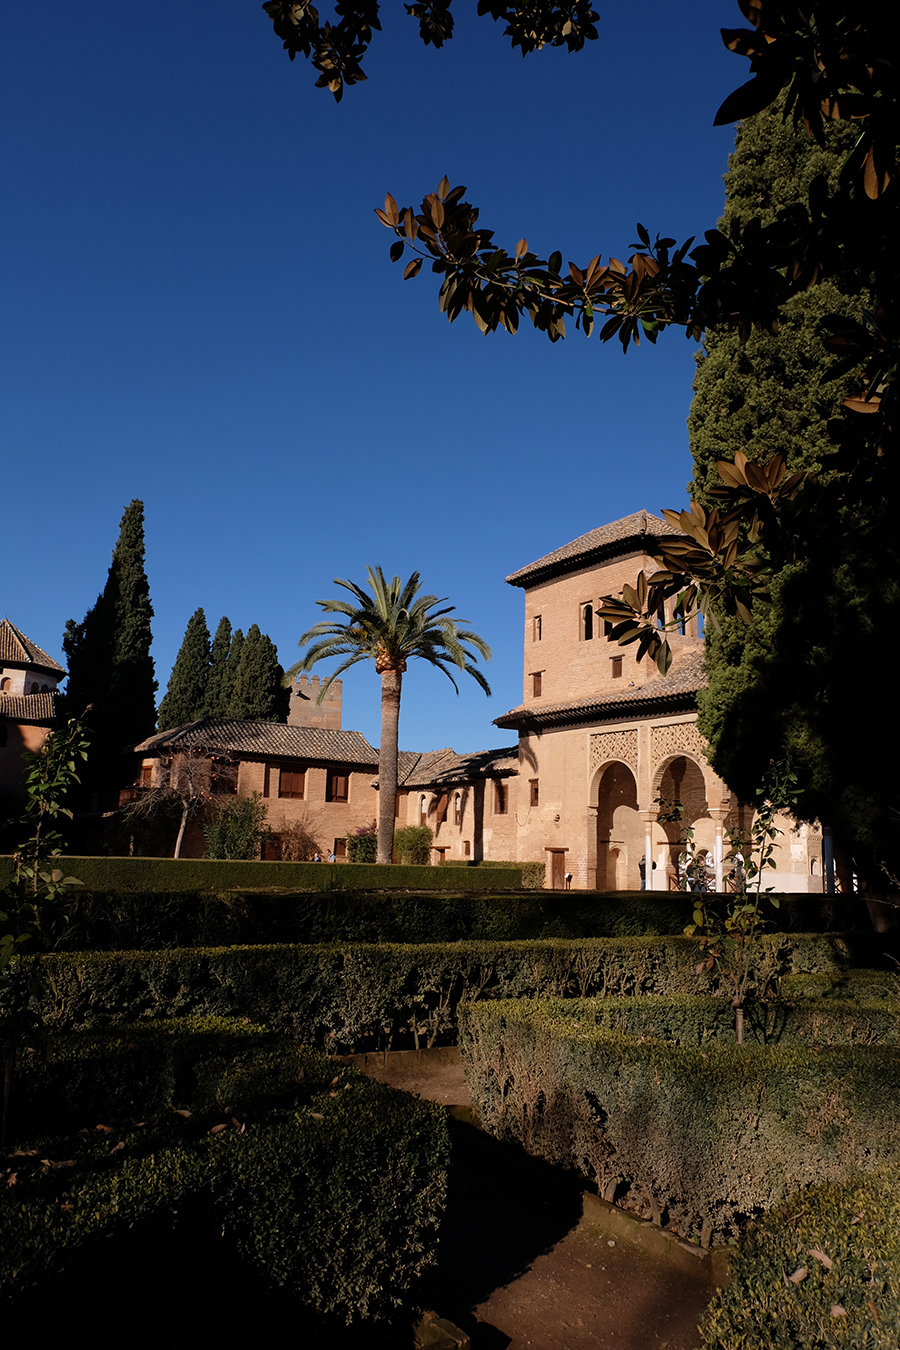 When you exit the Palace you enter The Partal, where a you can see an arched portico behind which stands the Tower of the Ladies and a large central pond. It's a beautiful and peaceful scenery. In the adjacent gardens they grow a variety of plants from flowers to chilies. The Partal was only included in the Alhambra a little more than a century ago.